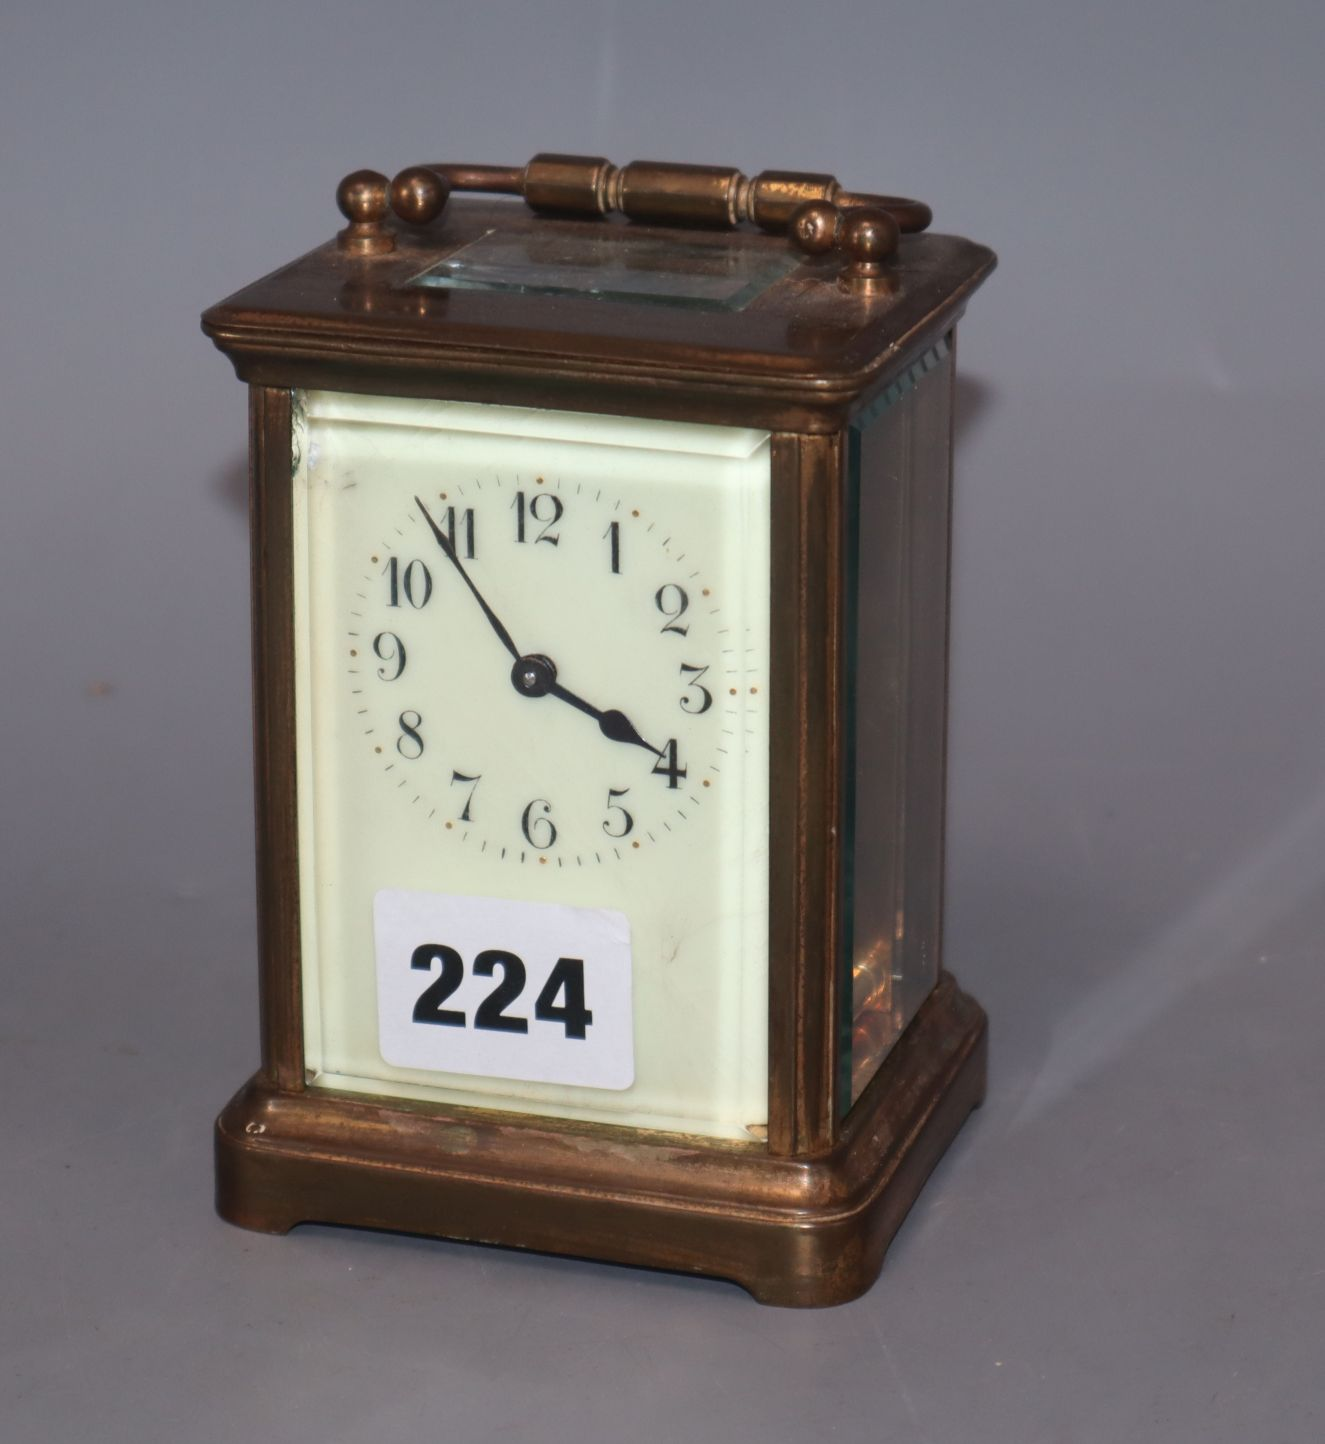 Lot 224 - A brass carriage timepiece with enamel dial